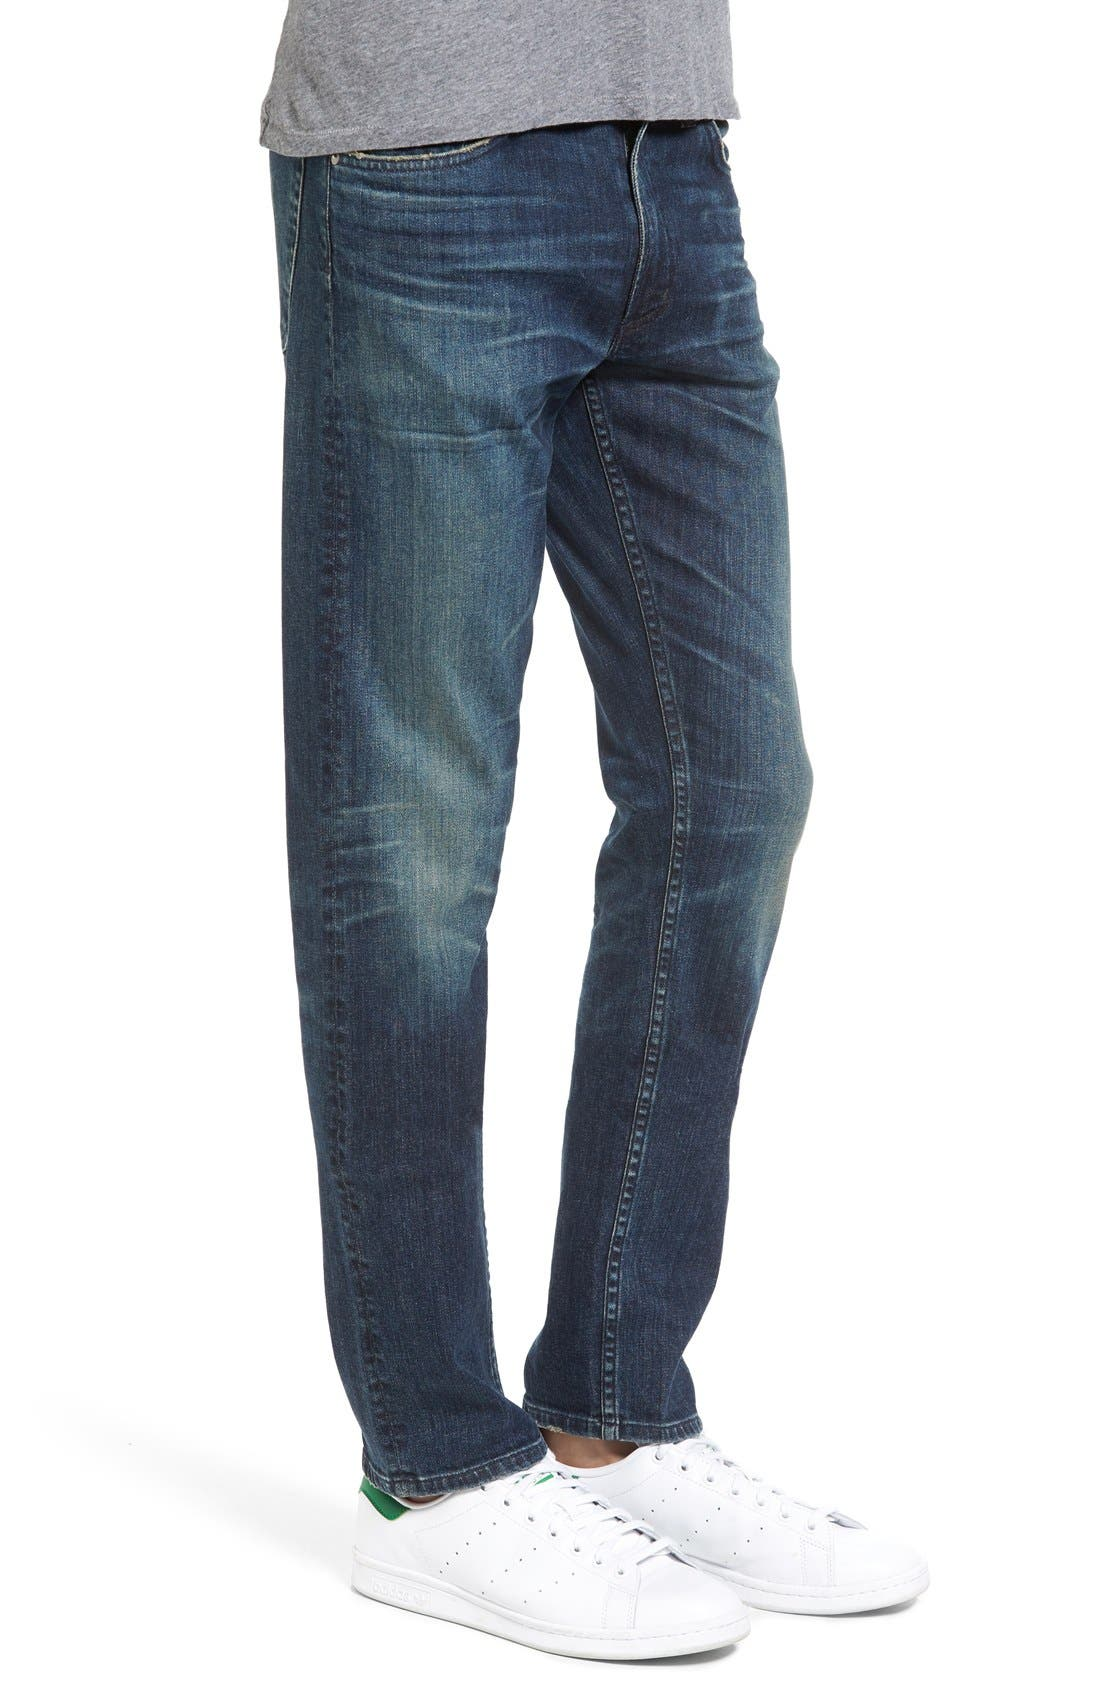 Bowery Slim Fit Jeans,                             Alternate thumbnail 3, color,                             Wild